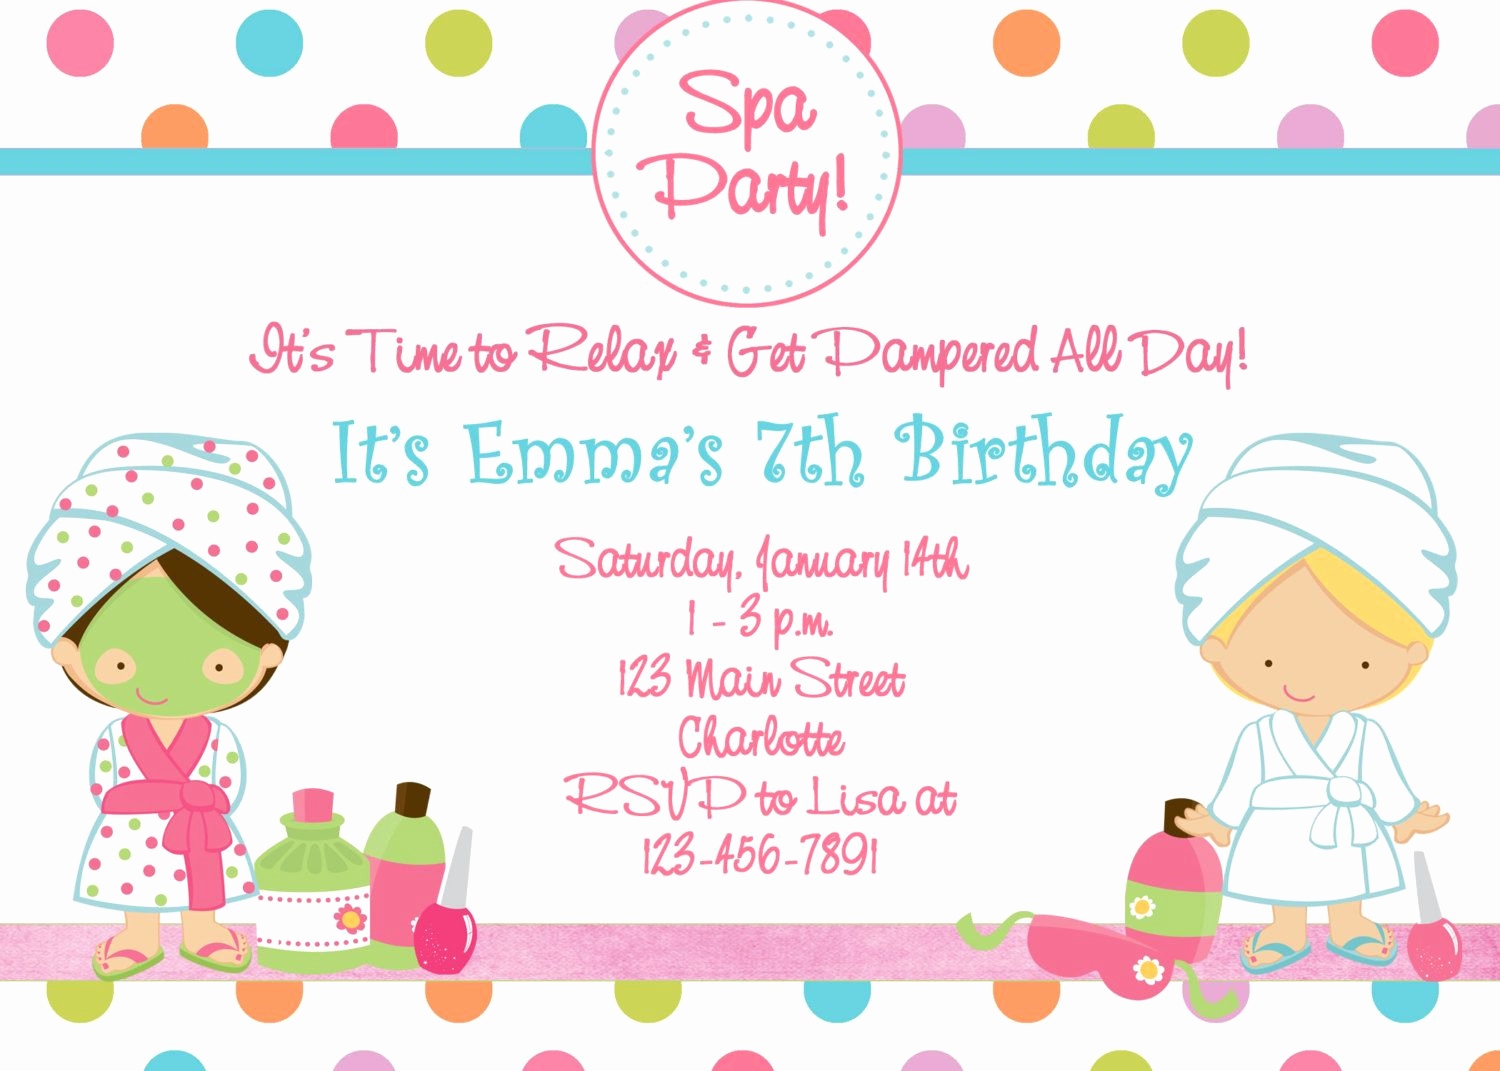 Spa Party Invitation Wording Best Of Free Printable Spa Birthday Party Invitations